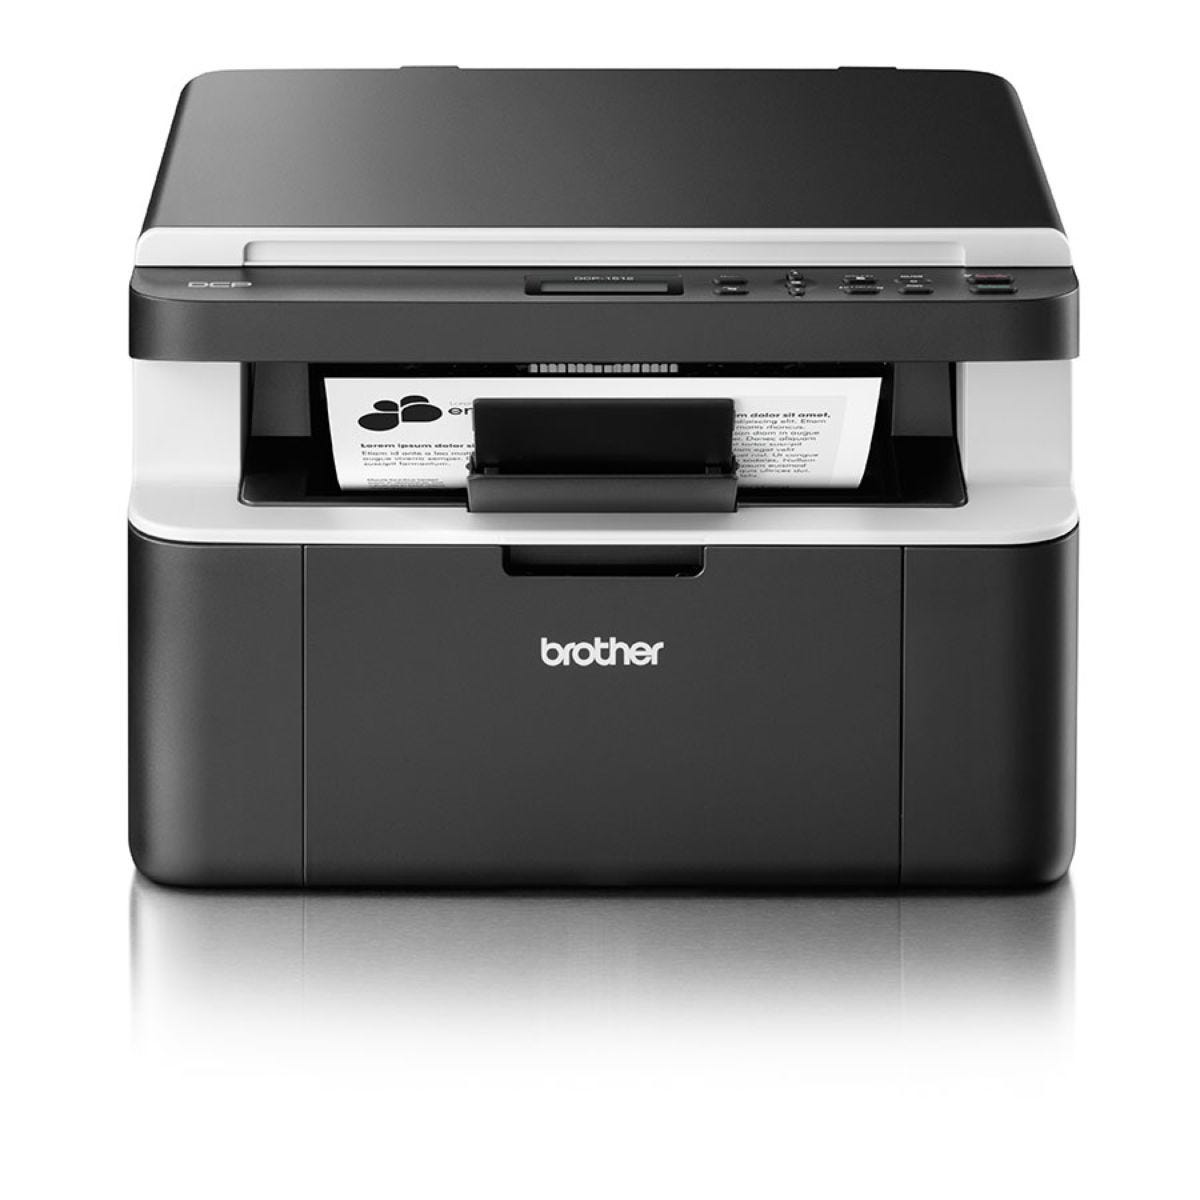 Brother DCP-1512 Compact All-In-One Mono Laser Printer